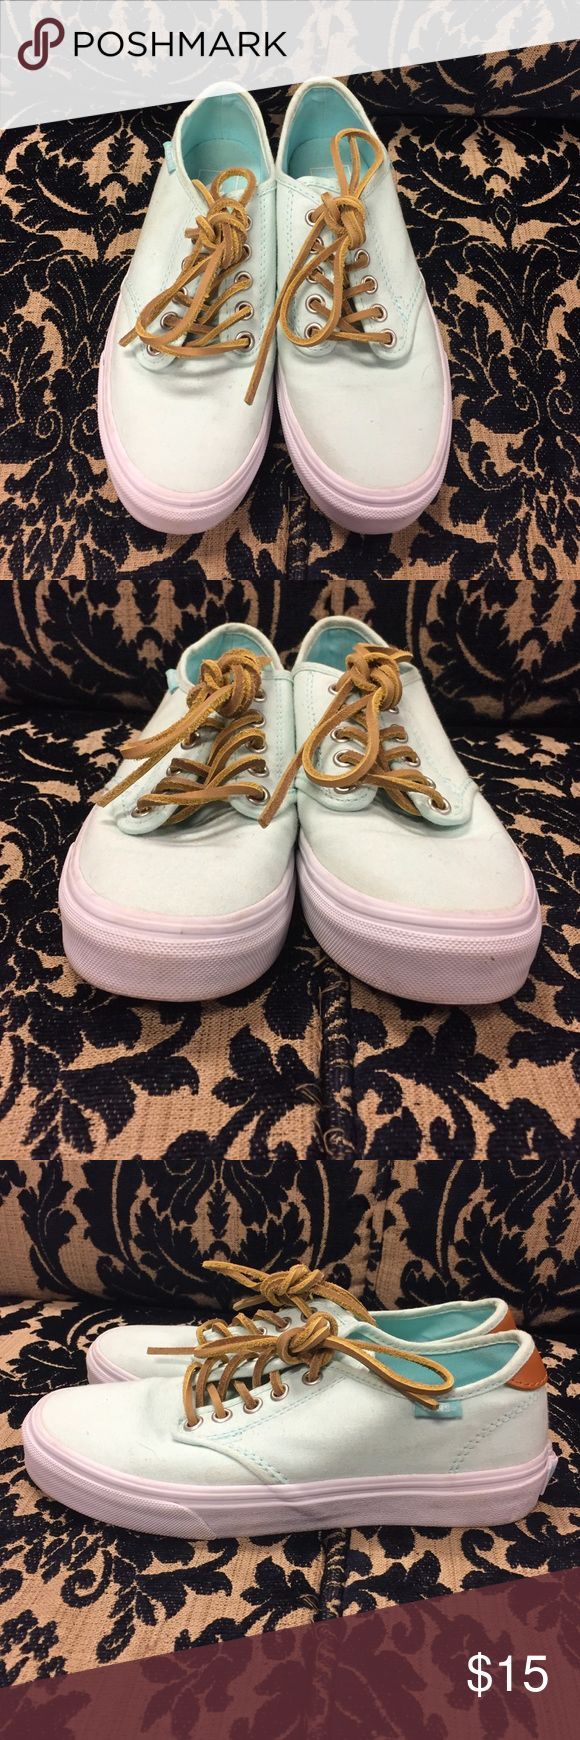 Mint VANS SIZE 6 WOMENS Cute mint vans, no rips of tears... little bit of wear on them but nothing major... all items come from a smoke free home.... check us out on IG @shopthebombshell Vans Shoes Sneakers